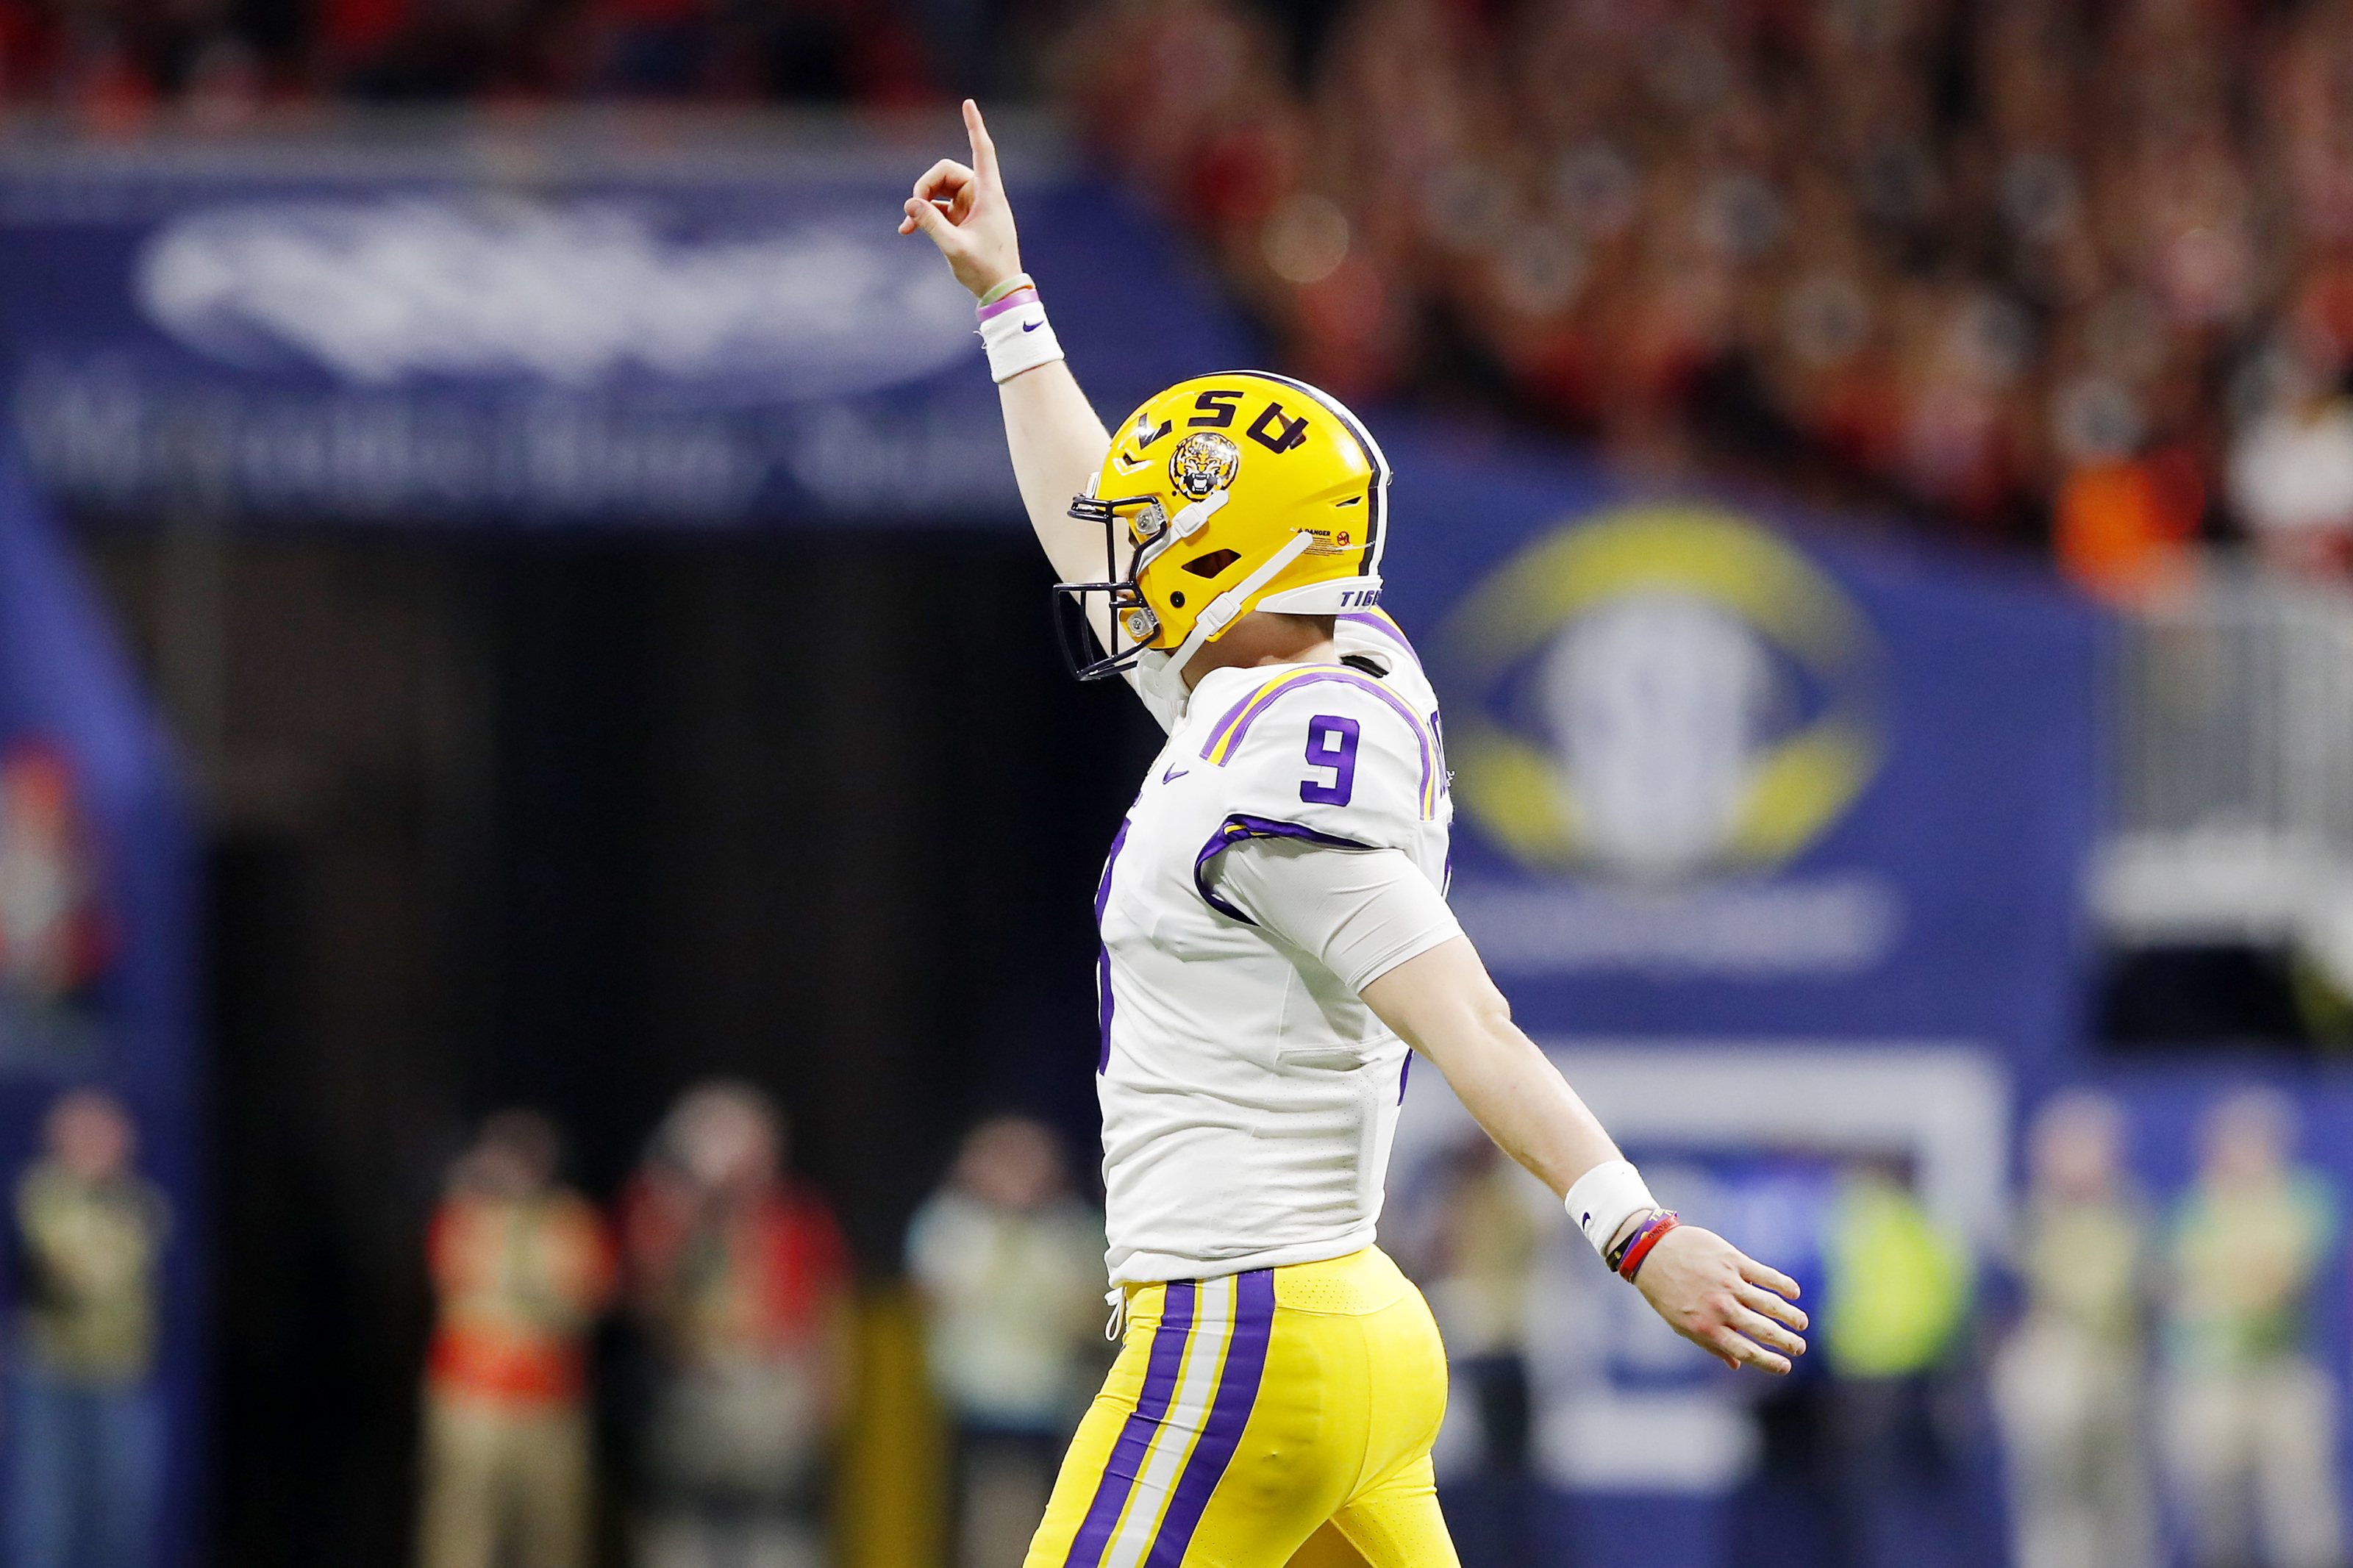 3 Ways The New Orleans Saints Can Trade Up For Lsu Superstar Joe Burrow He never shed his backup role there, though, and transferred to lsu less than two years ago, arriving as a burrow ignored the admonition, and that cigar waited to be gripped in the hand that mesmerized college football all. https whodatdish com 2019 12 27 new orleans saints deals trade joe burrow